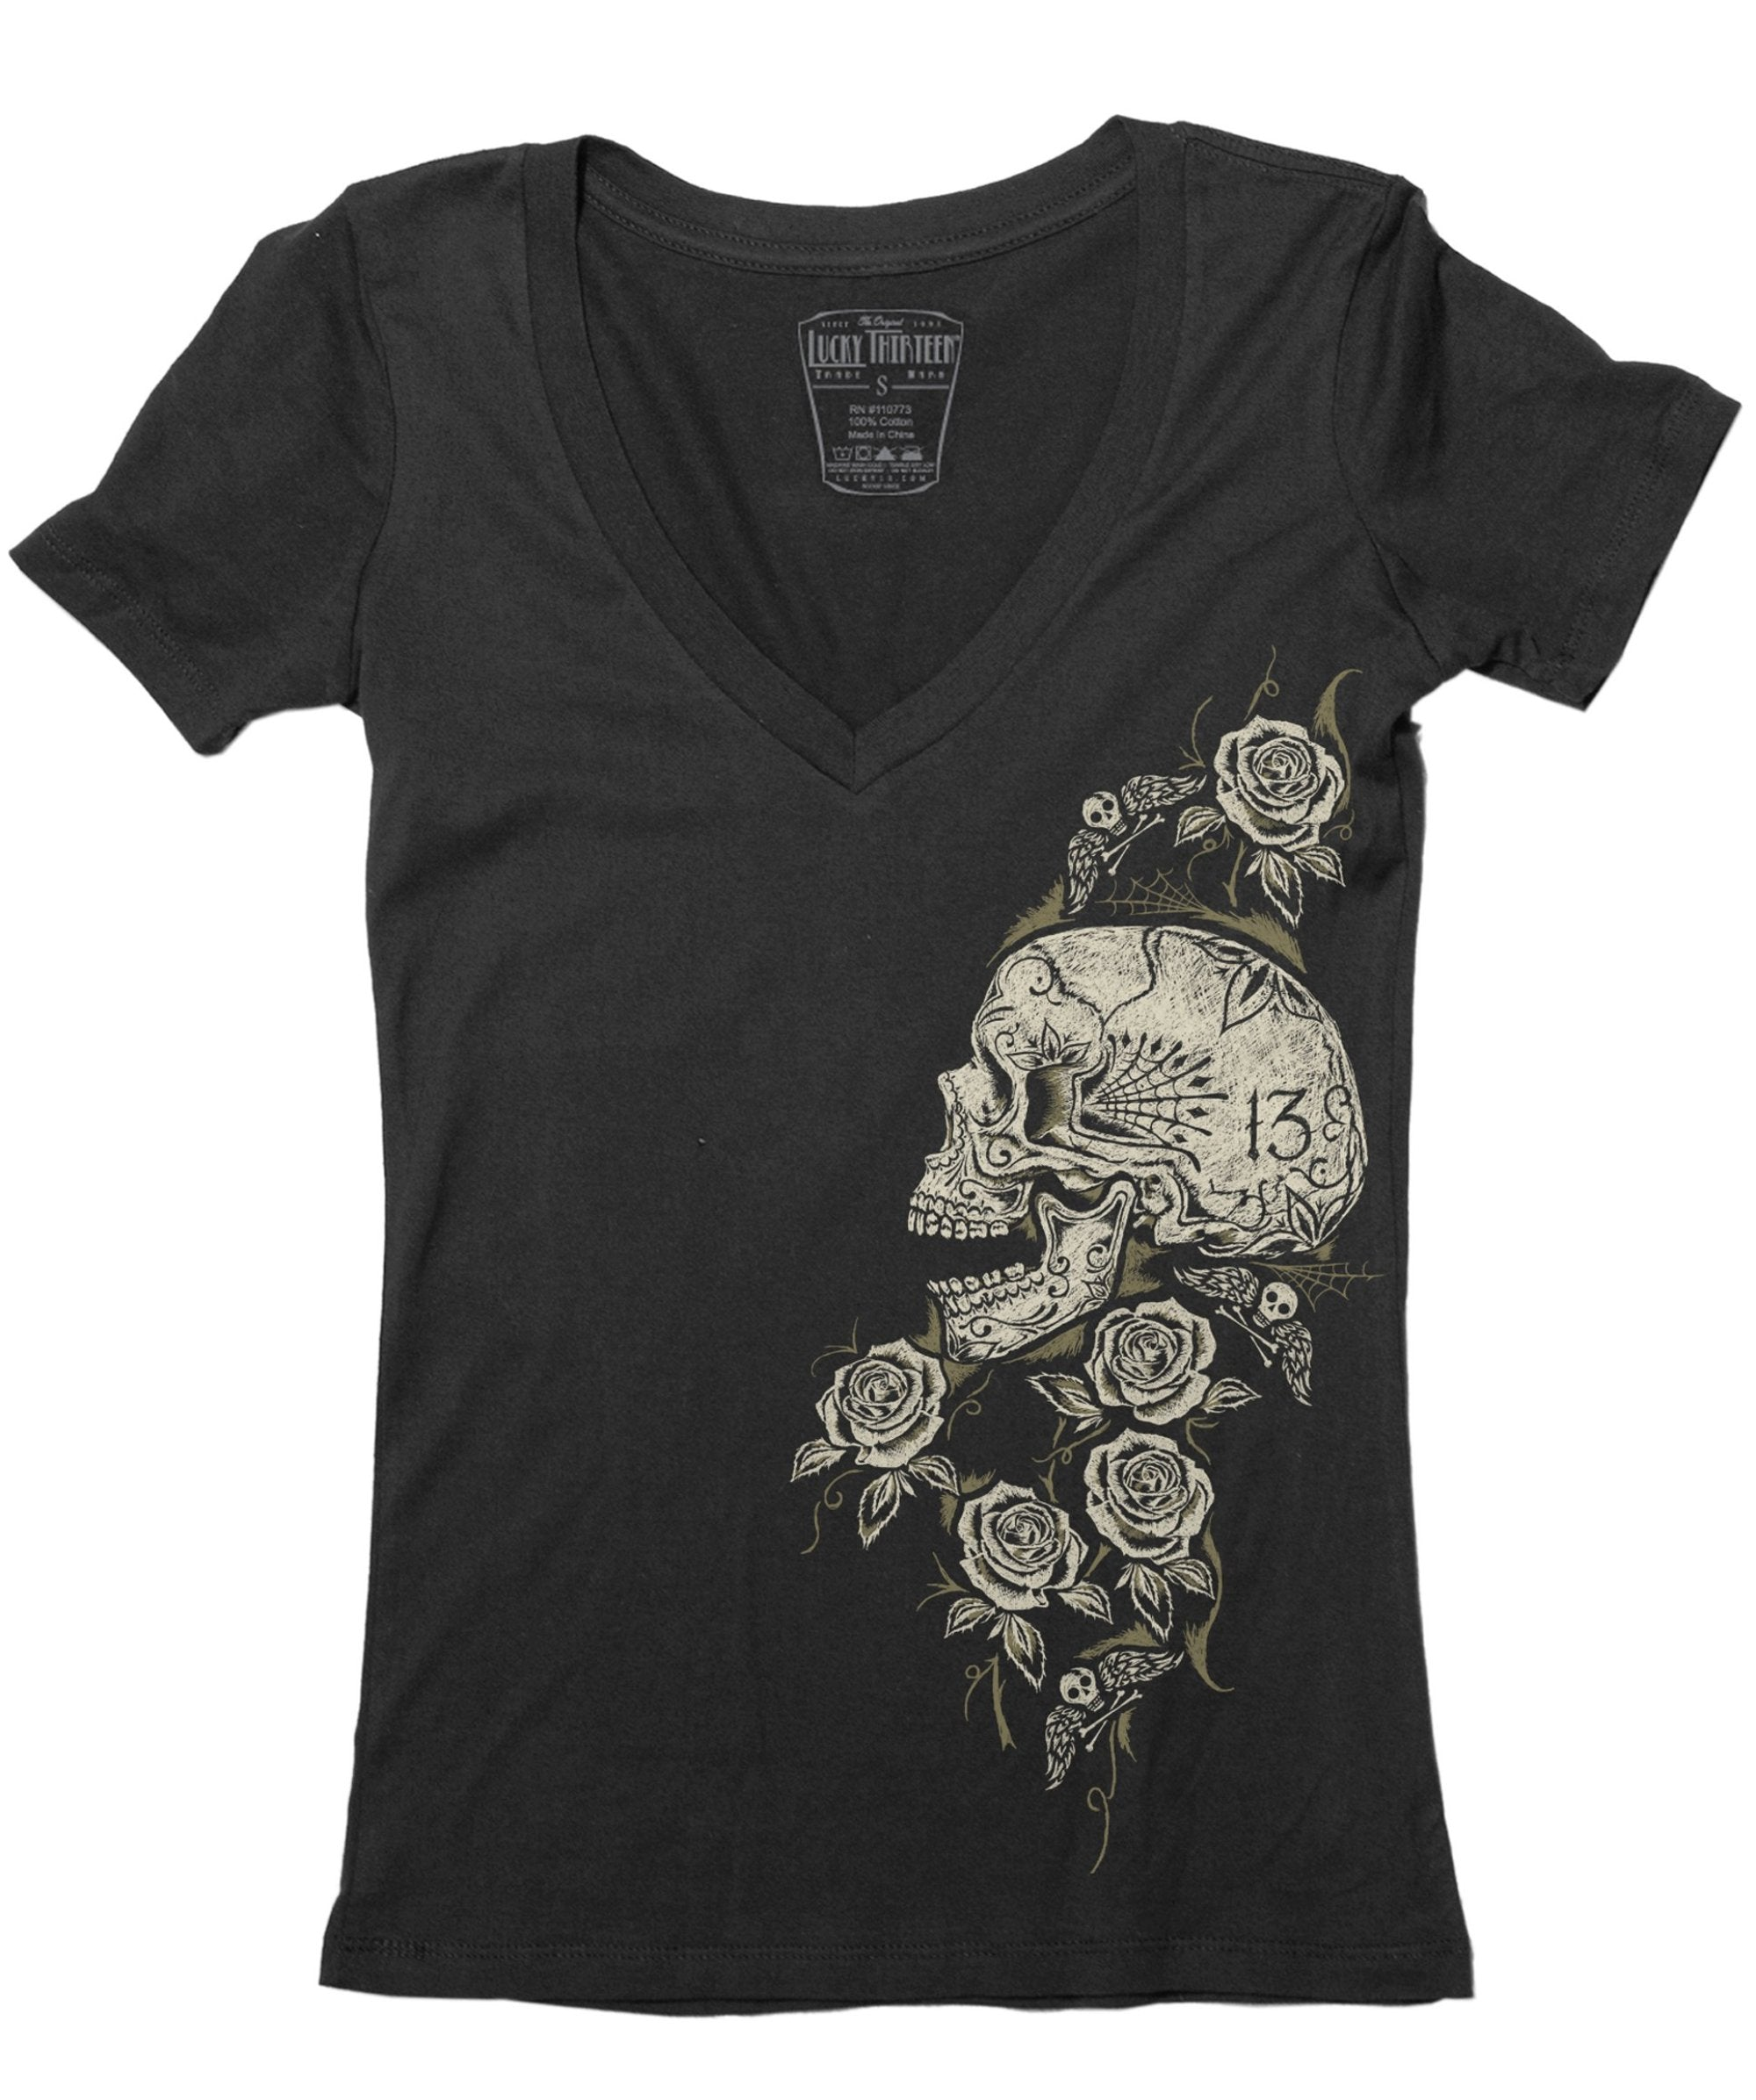 The SKULL ROSE V-Neck Tee